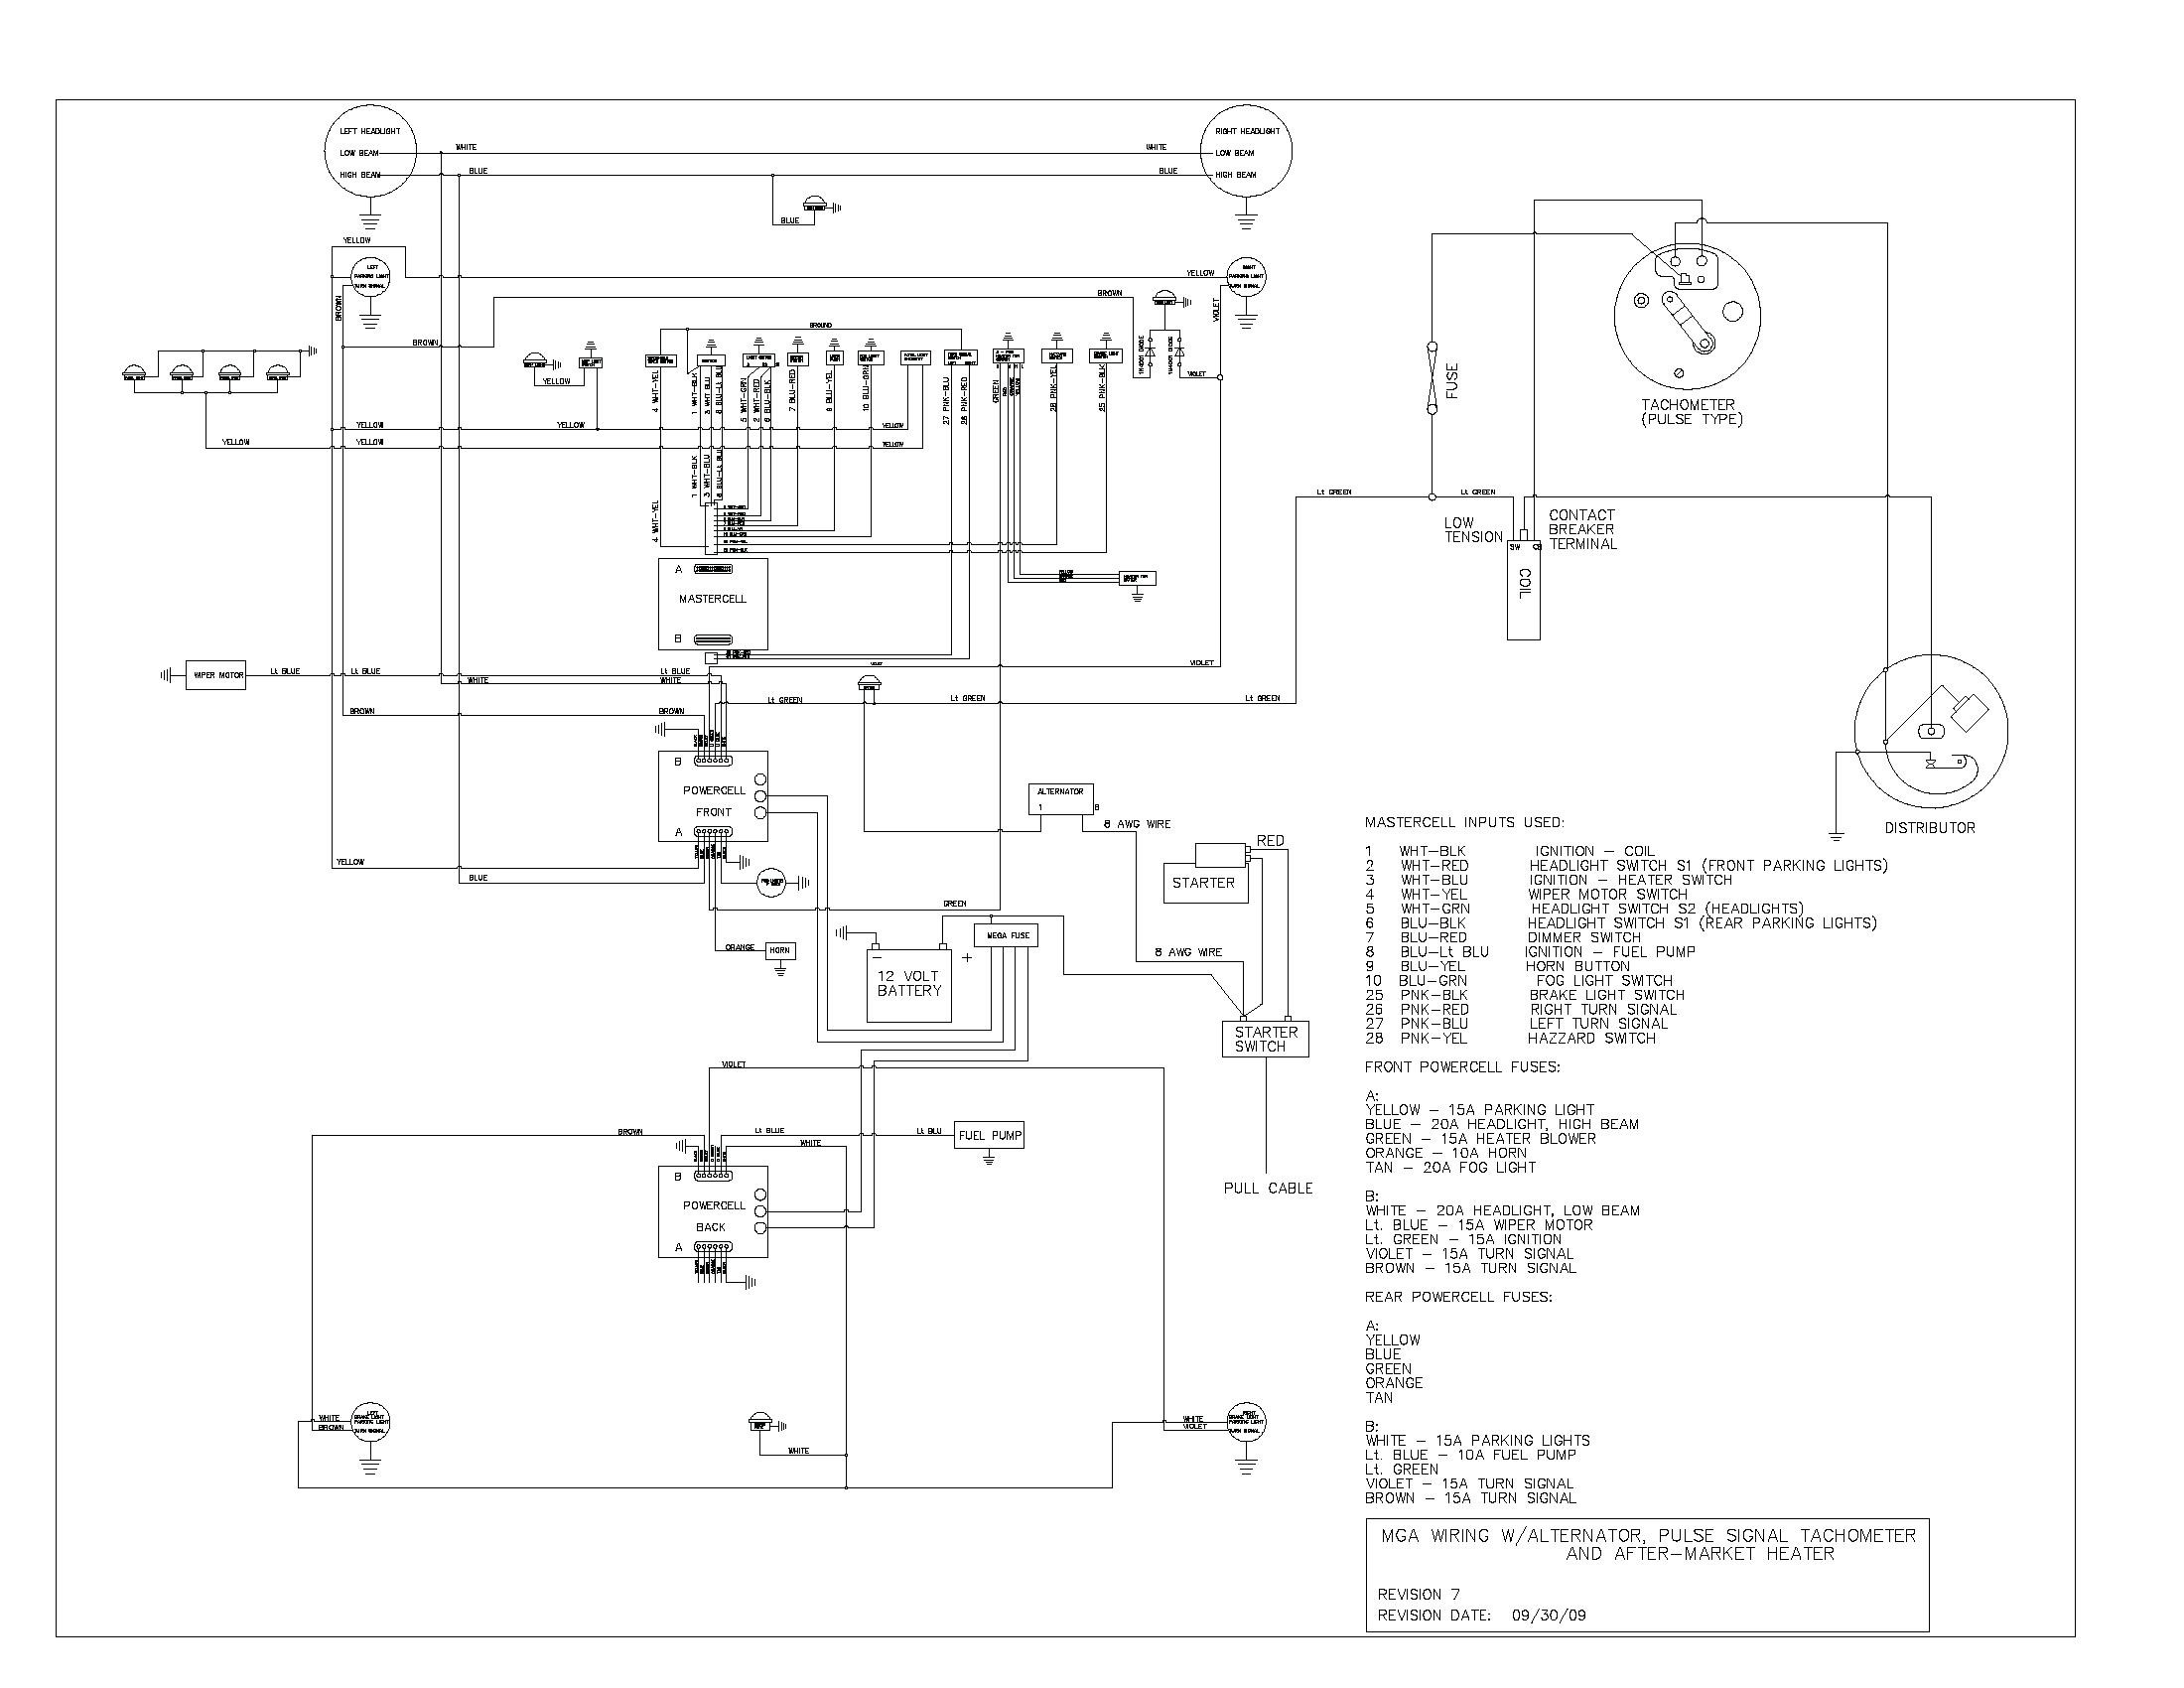 Full Size of 2 Speed Extractor Fan Wiring Diagram Electrical With Switch Wires Full Size